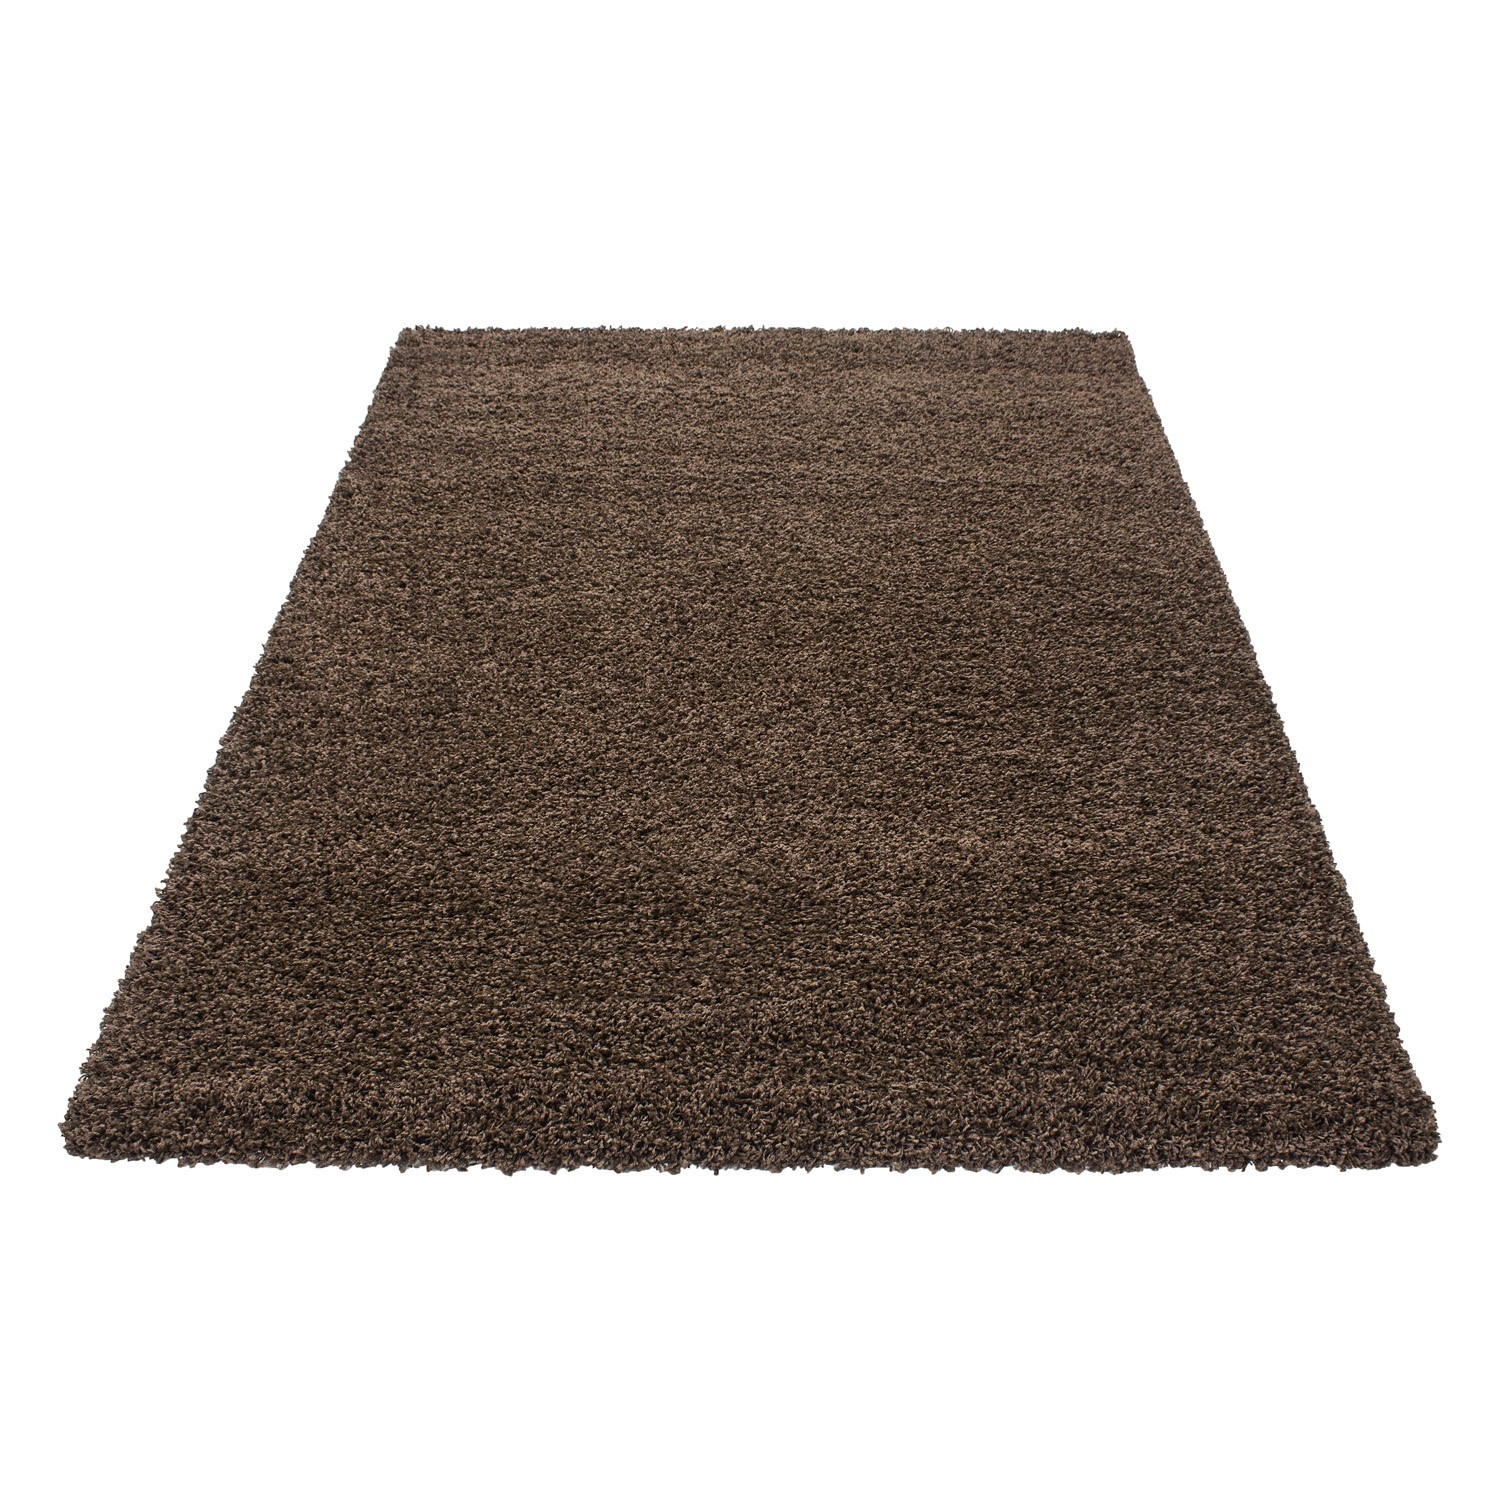 tapis shaggy brun moderne tapis design uni en. Black Bedroom Furniture Sets. Home Design Ideas